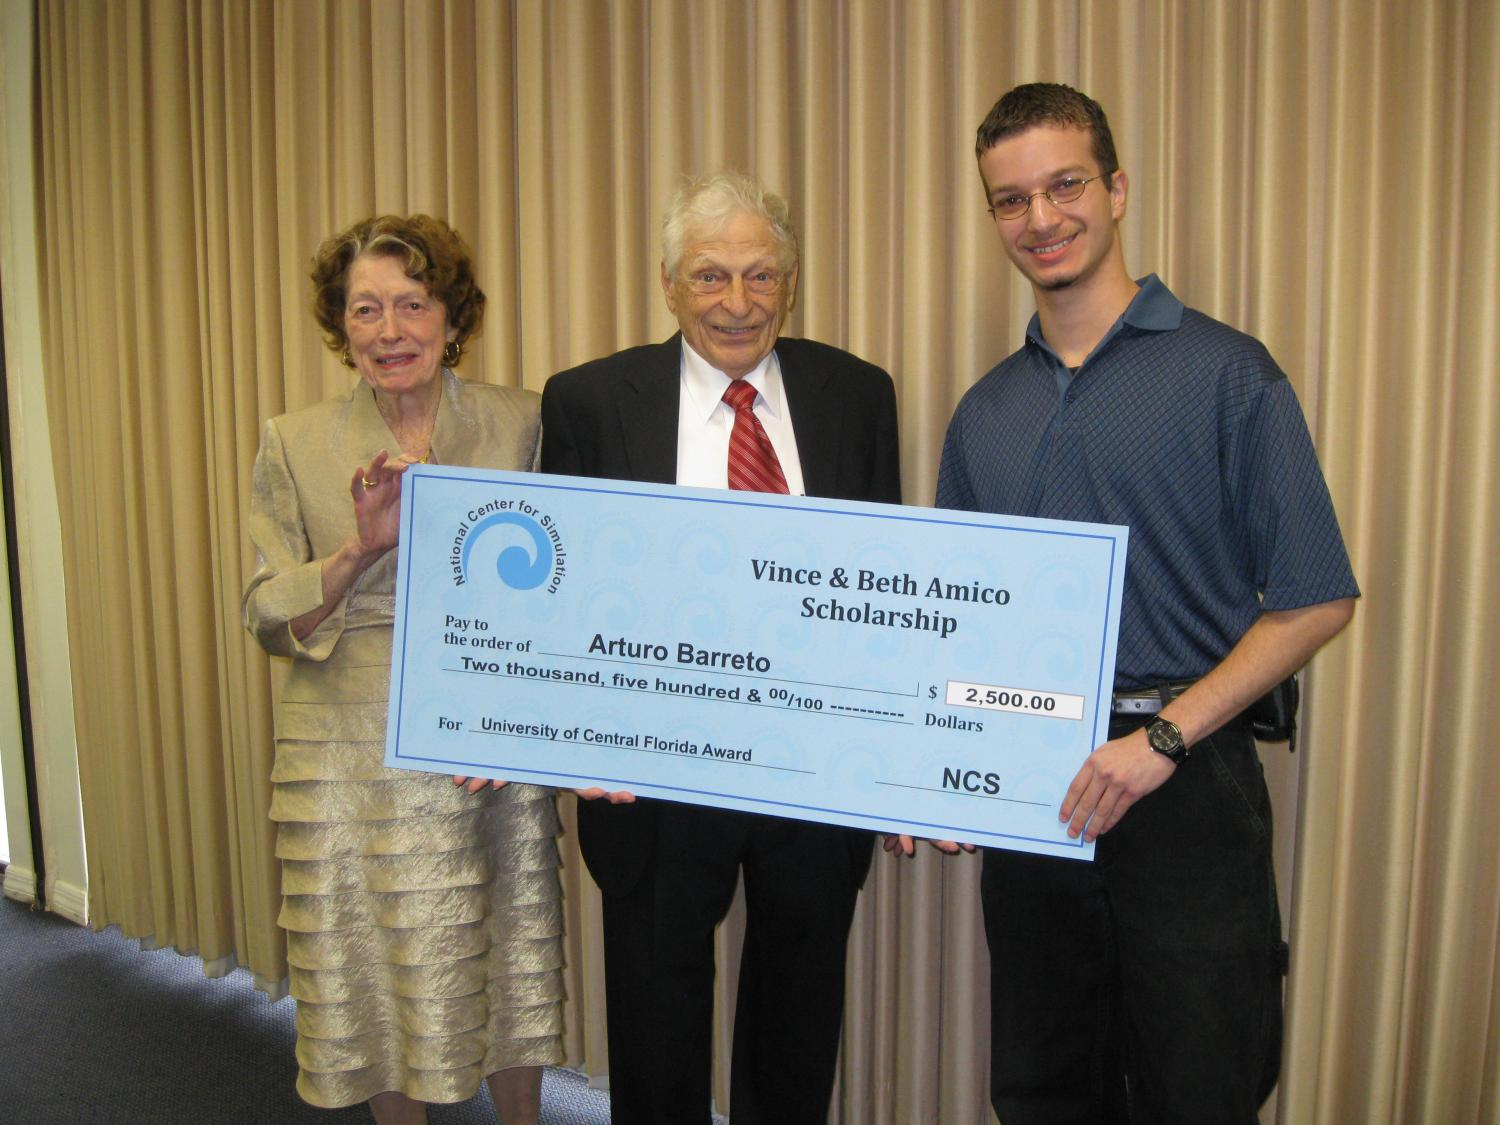 Vince and Beth Amico Scholarship